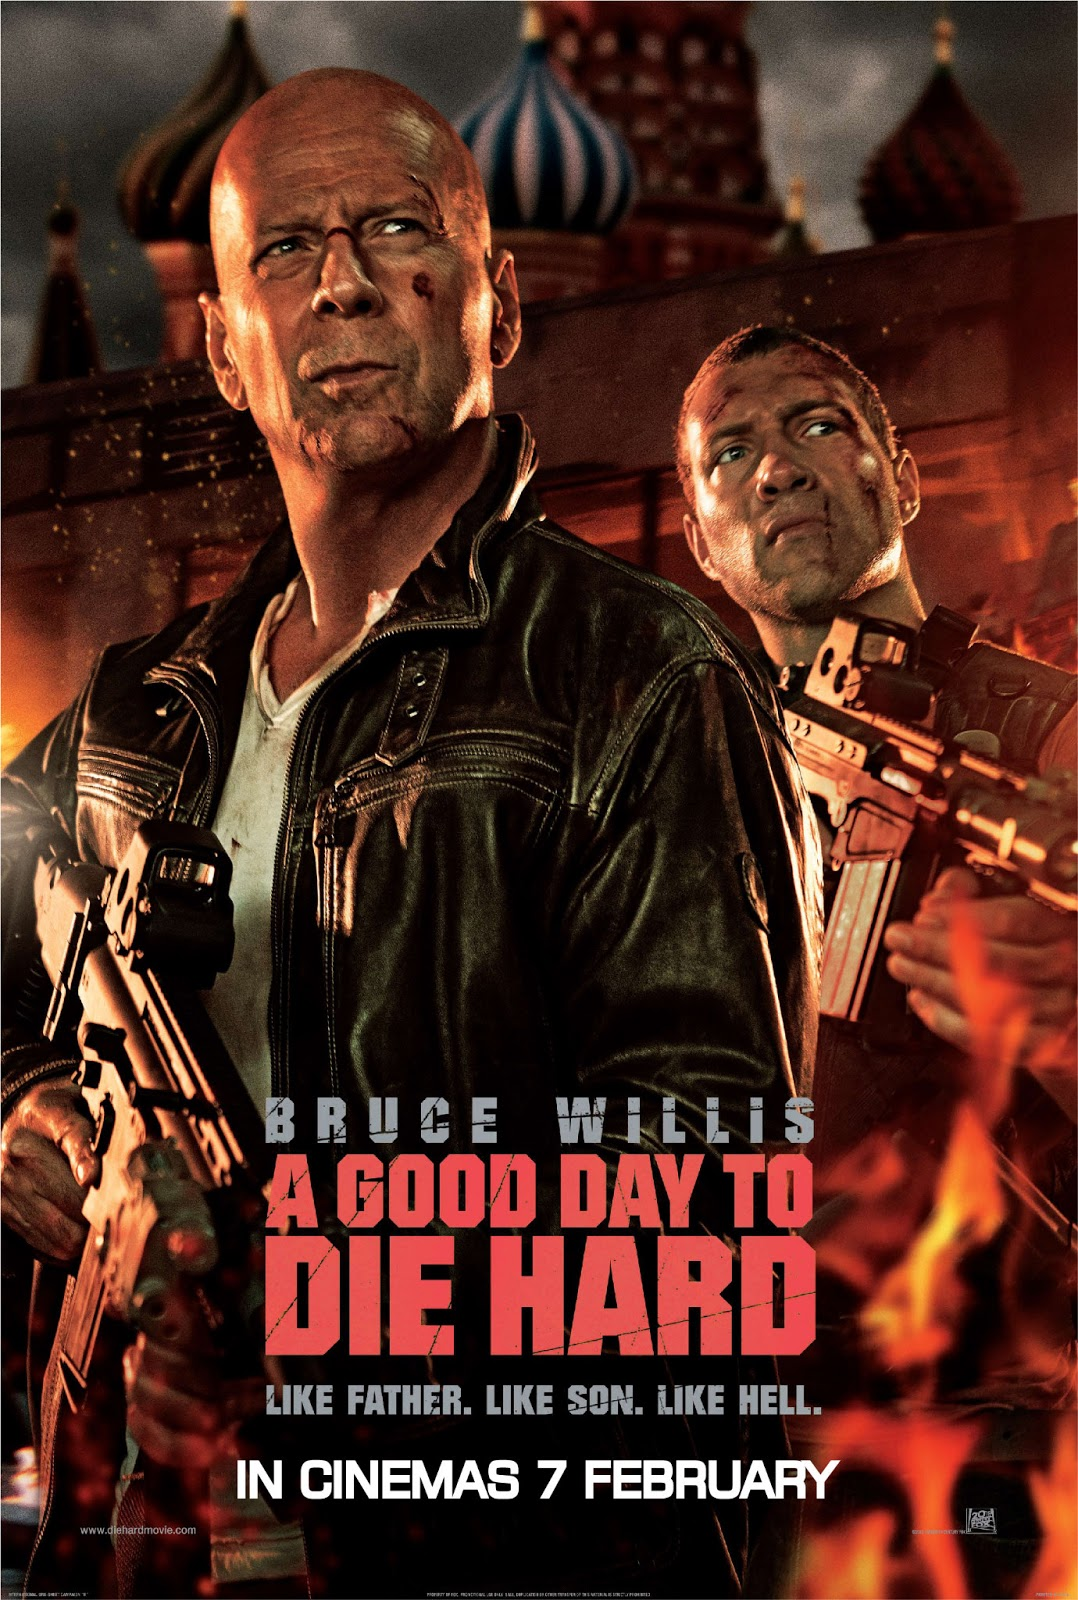 http://4.bp.blogspot.com/-nn-sIhfil1s/URJA-yvL0LI/AAAAAAAAGAM/E3I4Naqg6c0/s1600/Good+Day+To+Die+Hard+5+film+2013+movie+poster+large.jpg